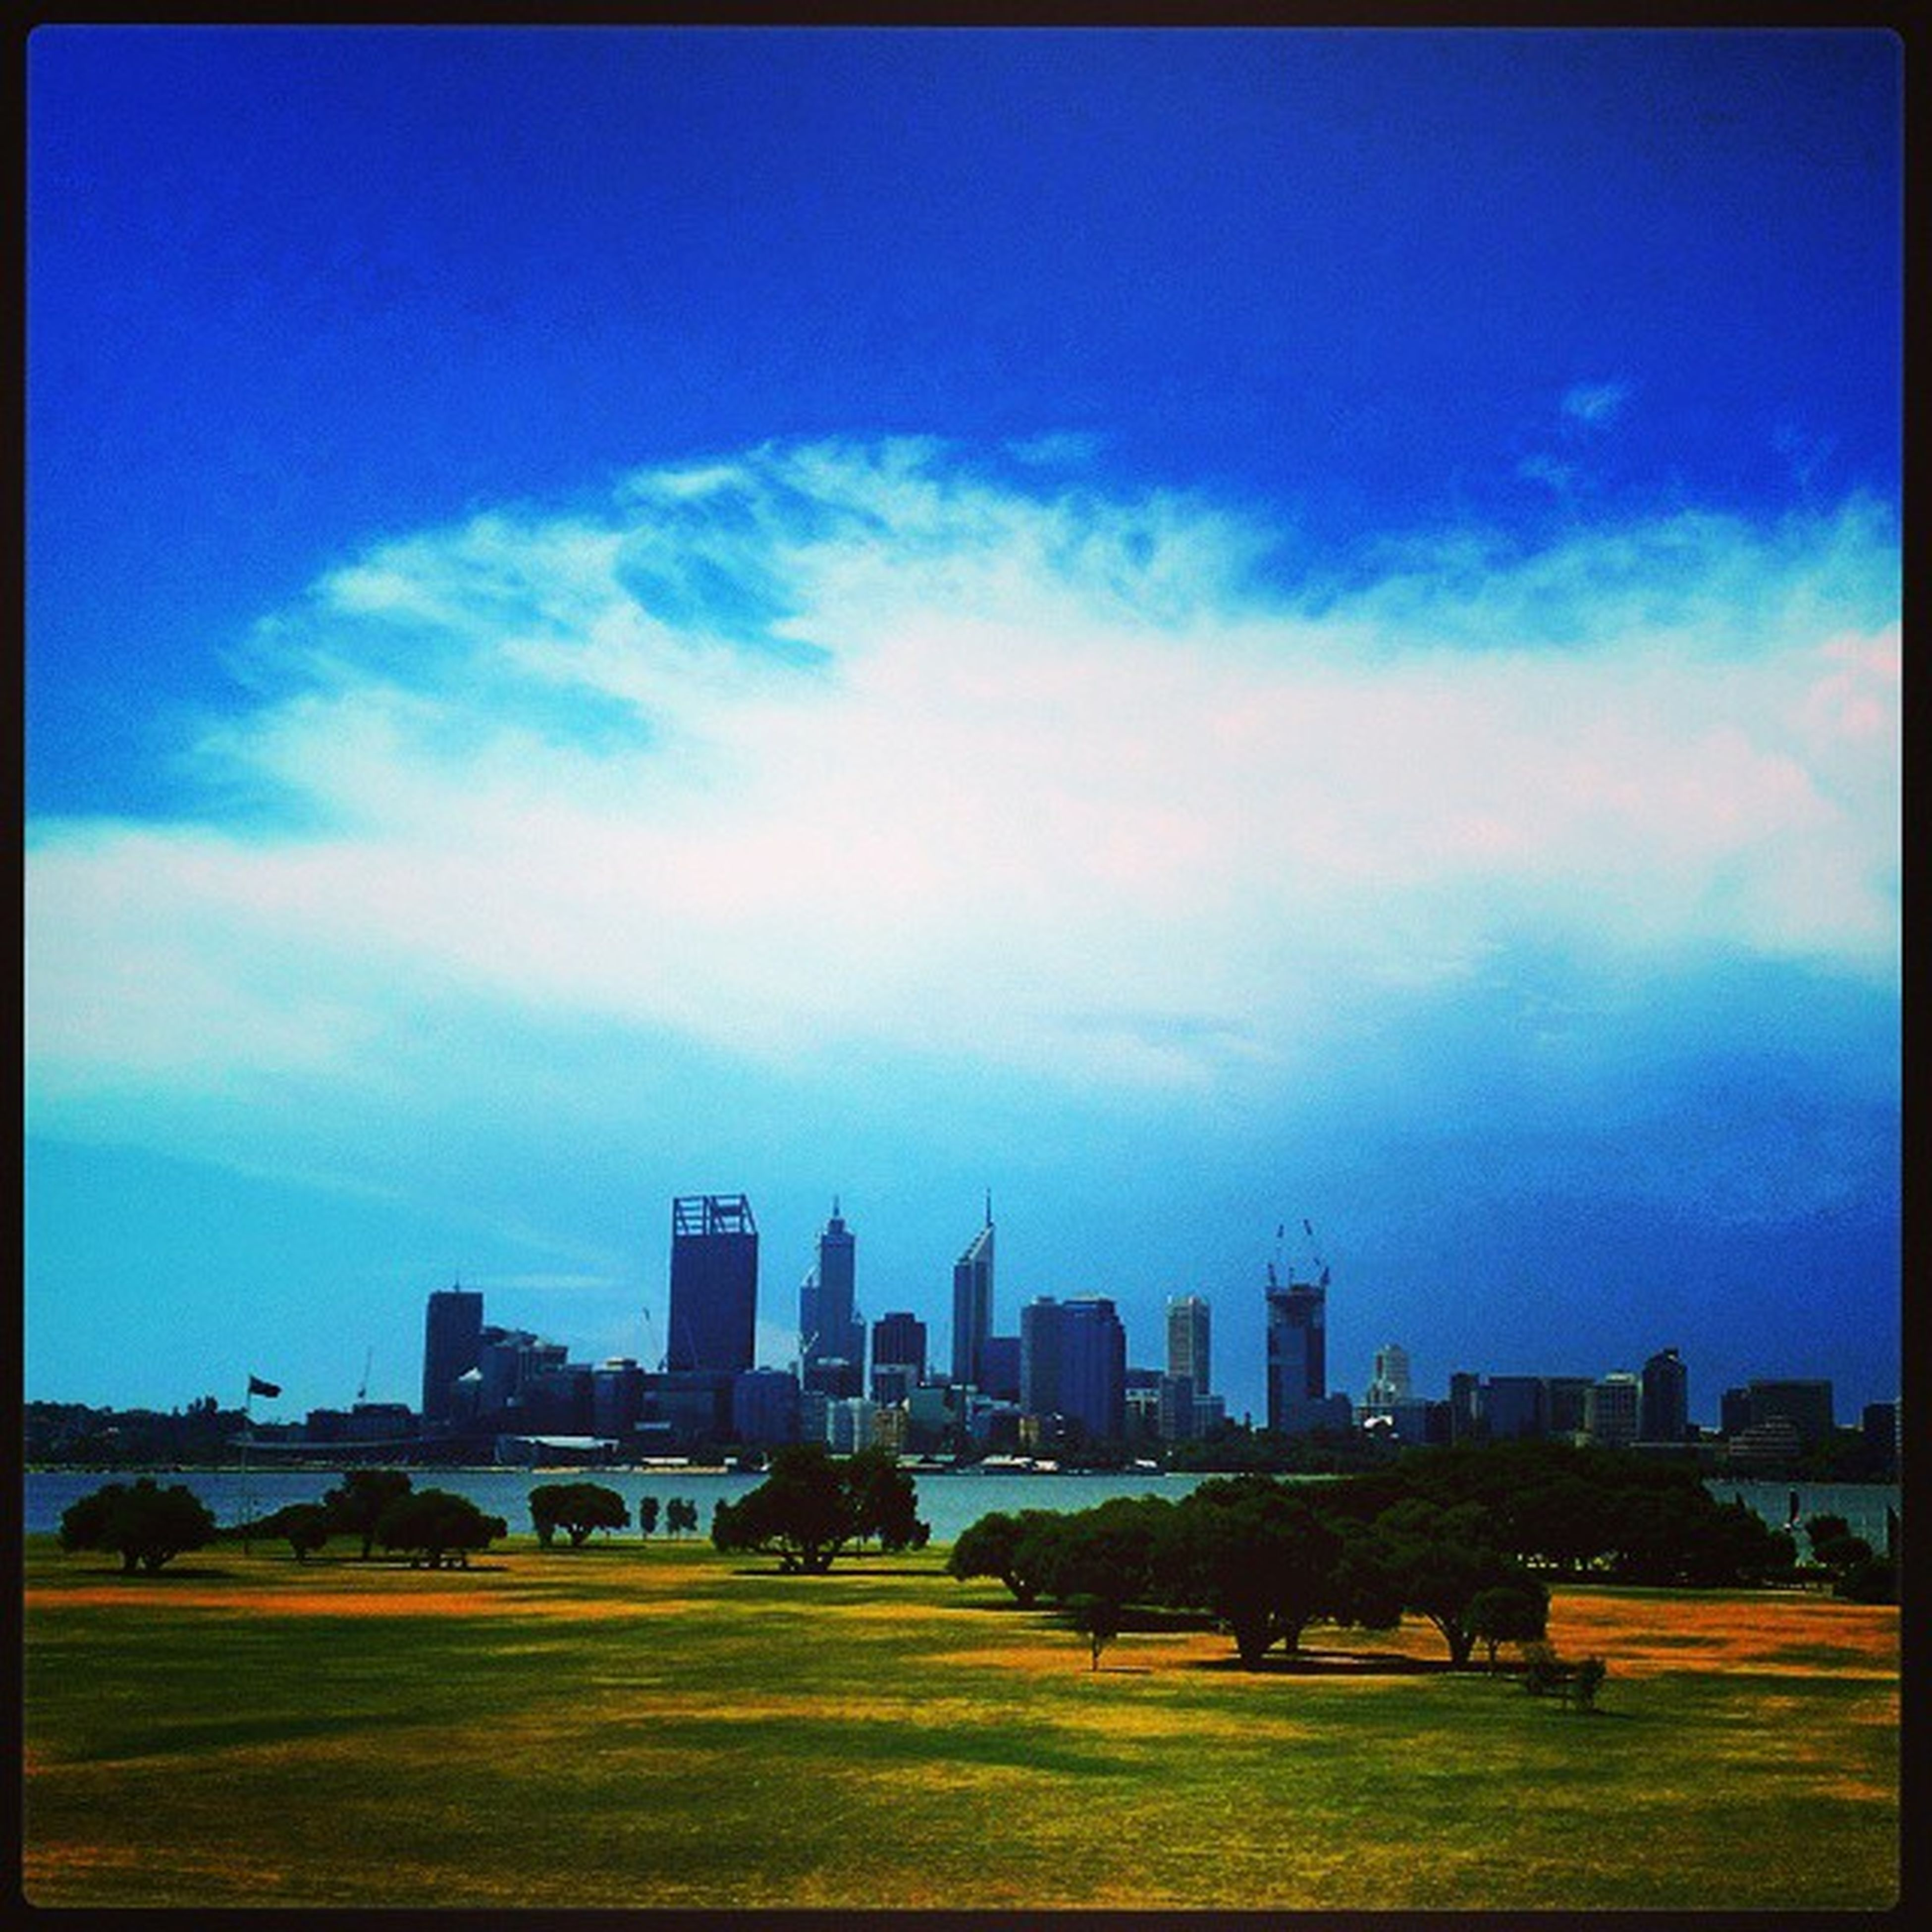 44°C with a storm rolling in! Hottimesummerinthecity Summer Sohotrightnow Iloveperth itsreallywarminthisrhino perthlife